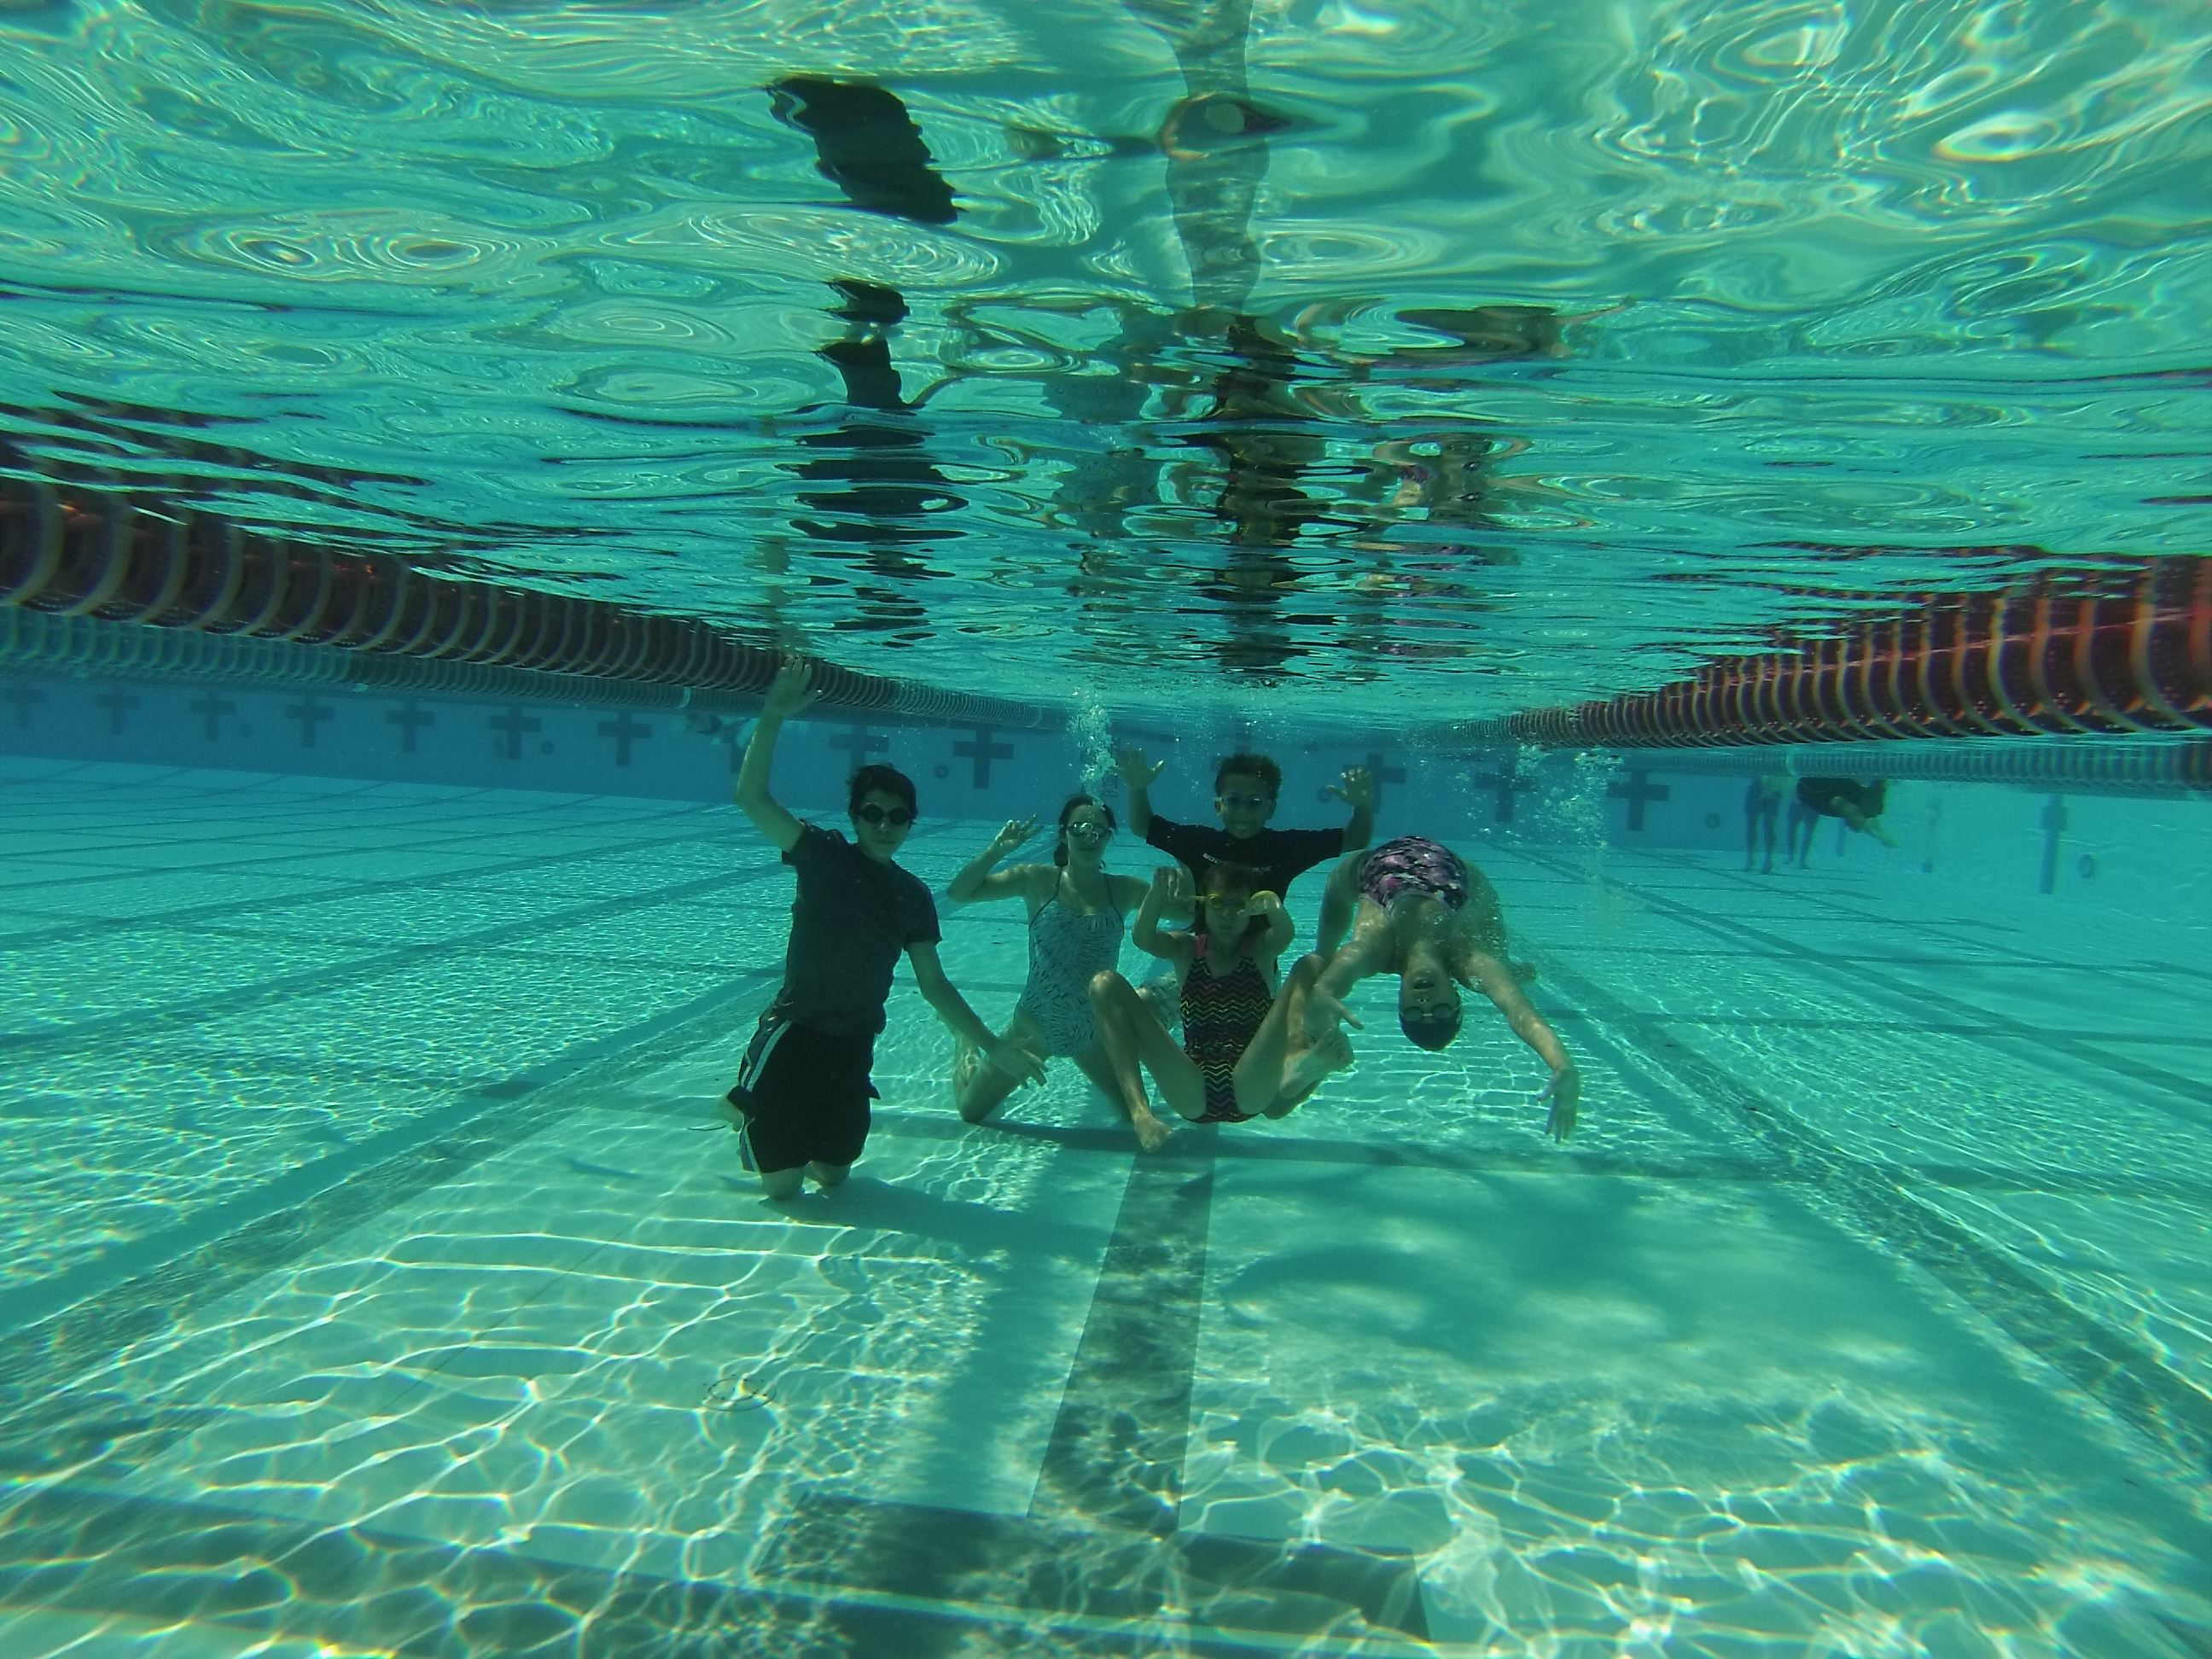 Swimmers practicing swimming under water.